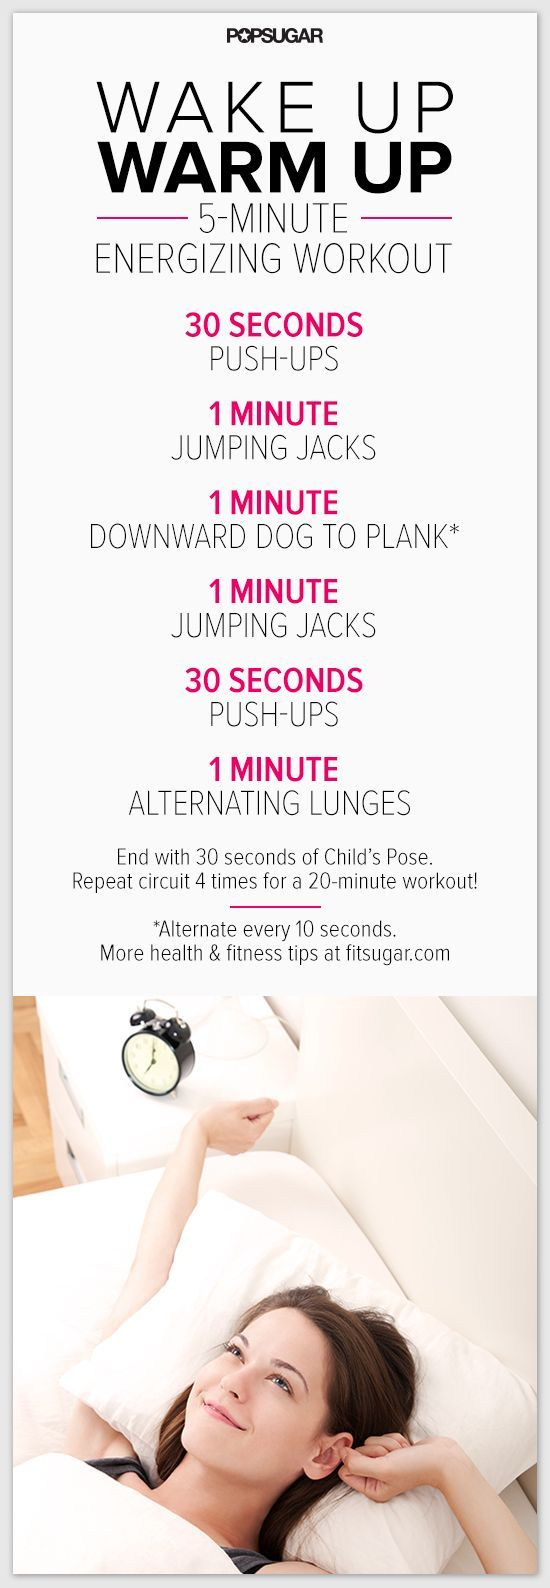 COLD Mornings- how to get out of bed and warm right up and start your day bringing calories! This 5-minute workout to wake you up, burns 46 calories.